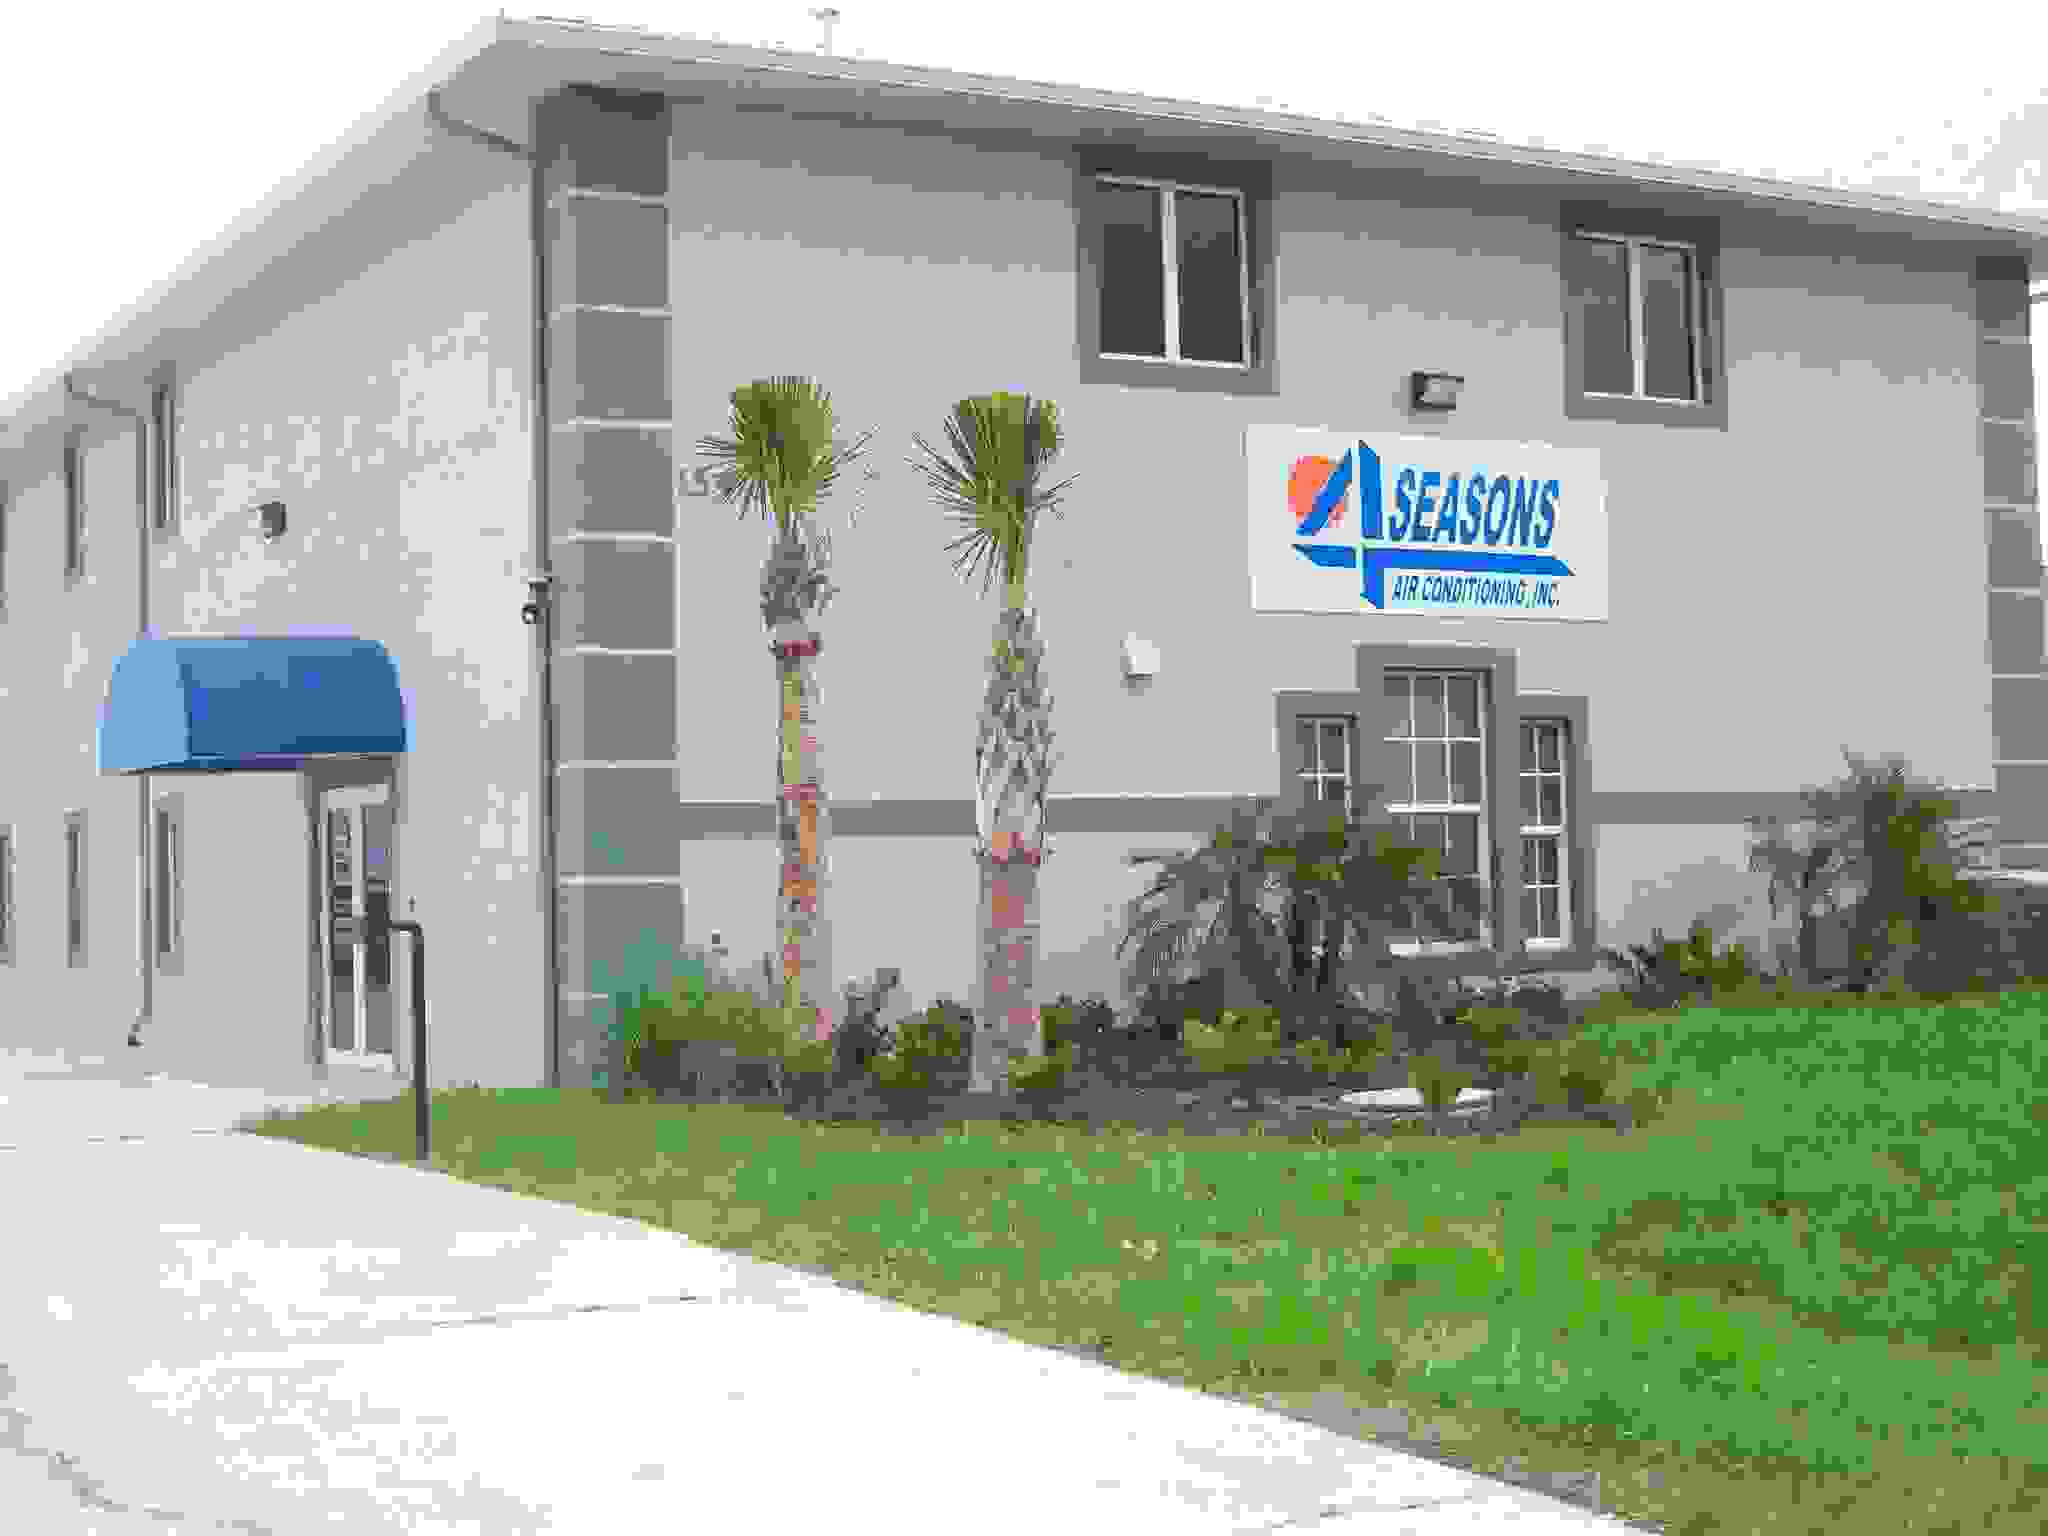 Four Seasons Air Conditioning, Inc. 1592 Market Circle, Port Charlotte, FL 33953